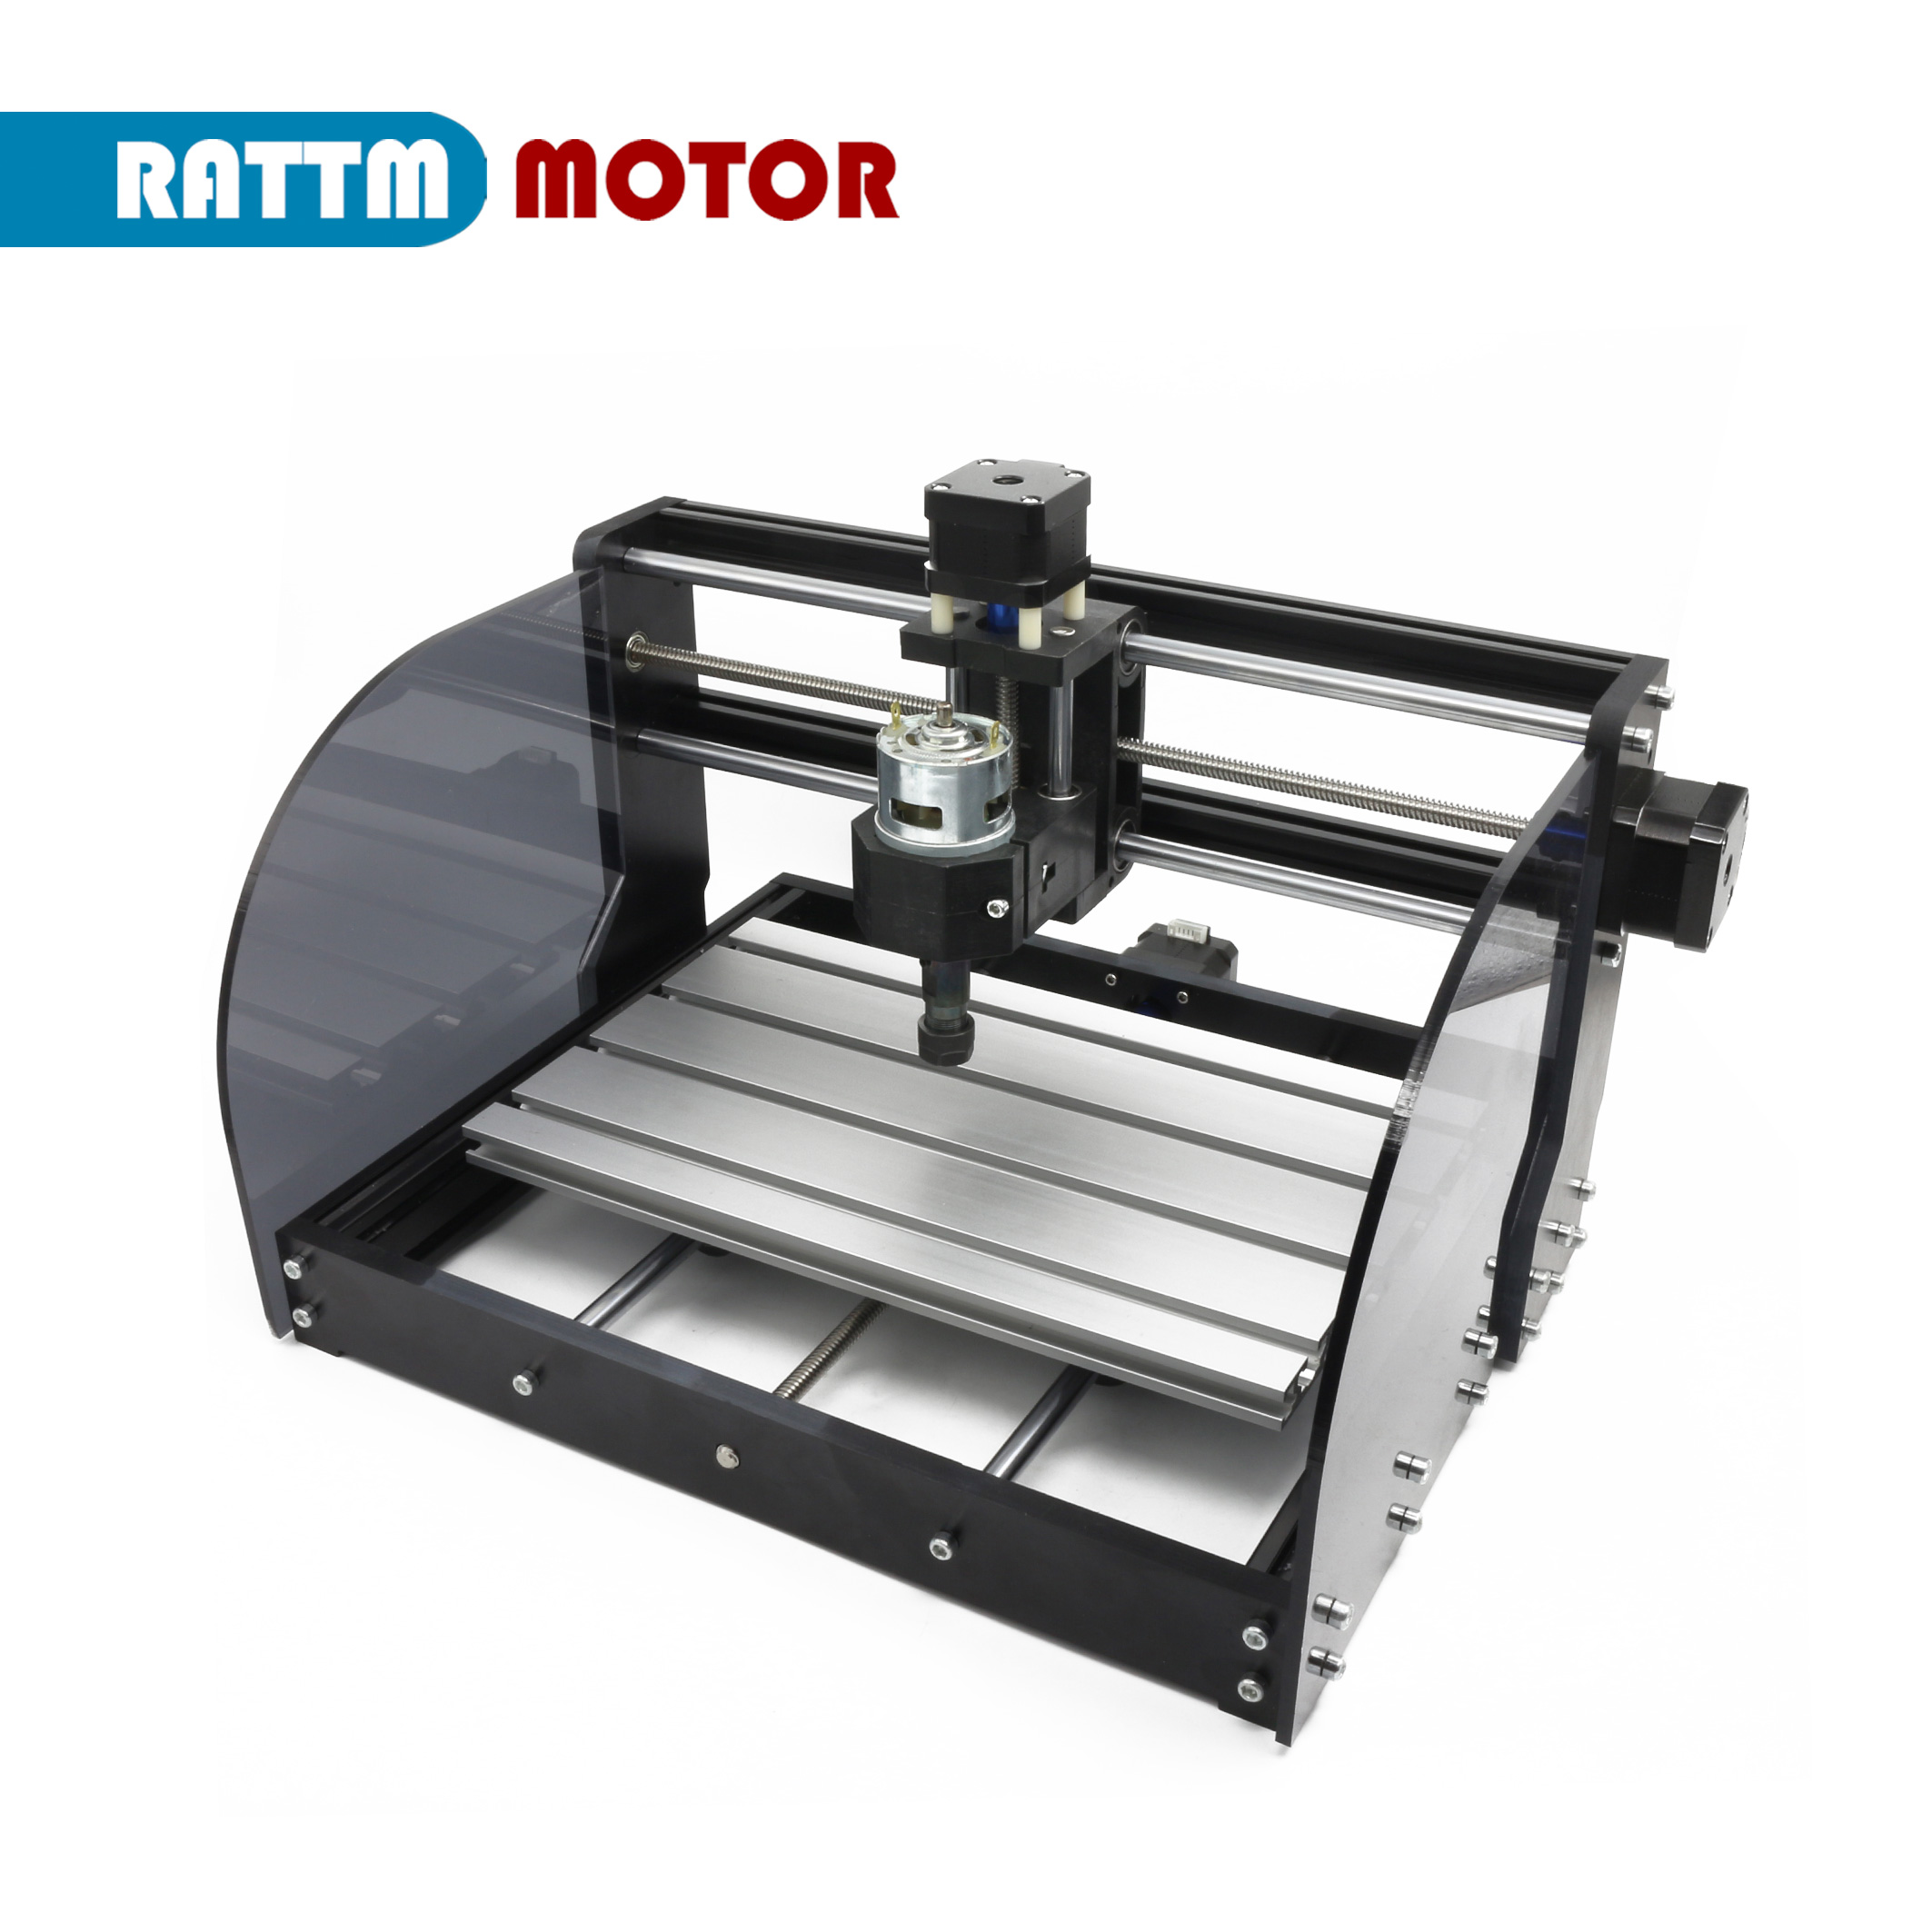 EU SHIP! 1 PCS <font><b>CNC</b></font> <font><b>3018Pro</b></font>-<font><b>Max</b></font> 3Axis GRBL Control DIY Mini Laser Rngraving Machine/<font><b>CNC</b></font> Cutting Machine + <font><b>CNC</b></font> Offline Controller image